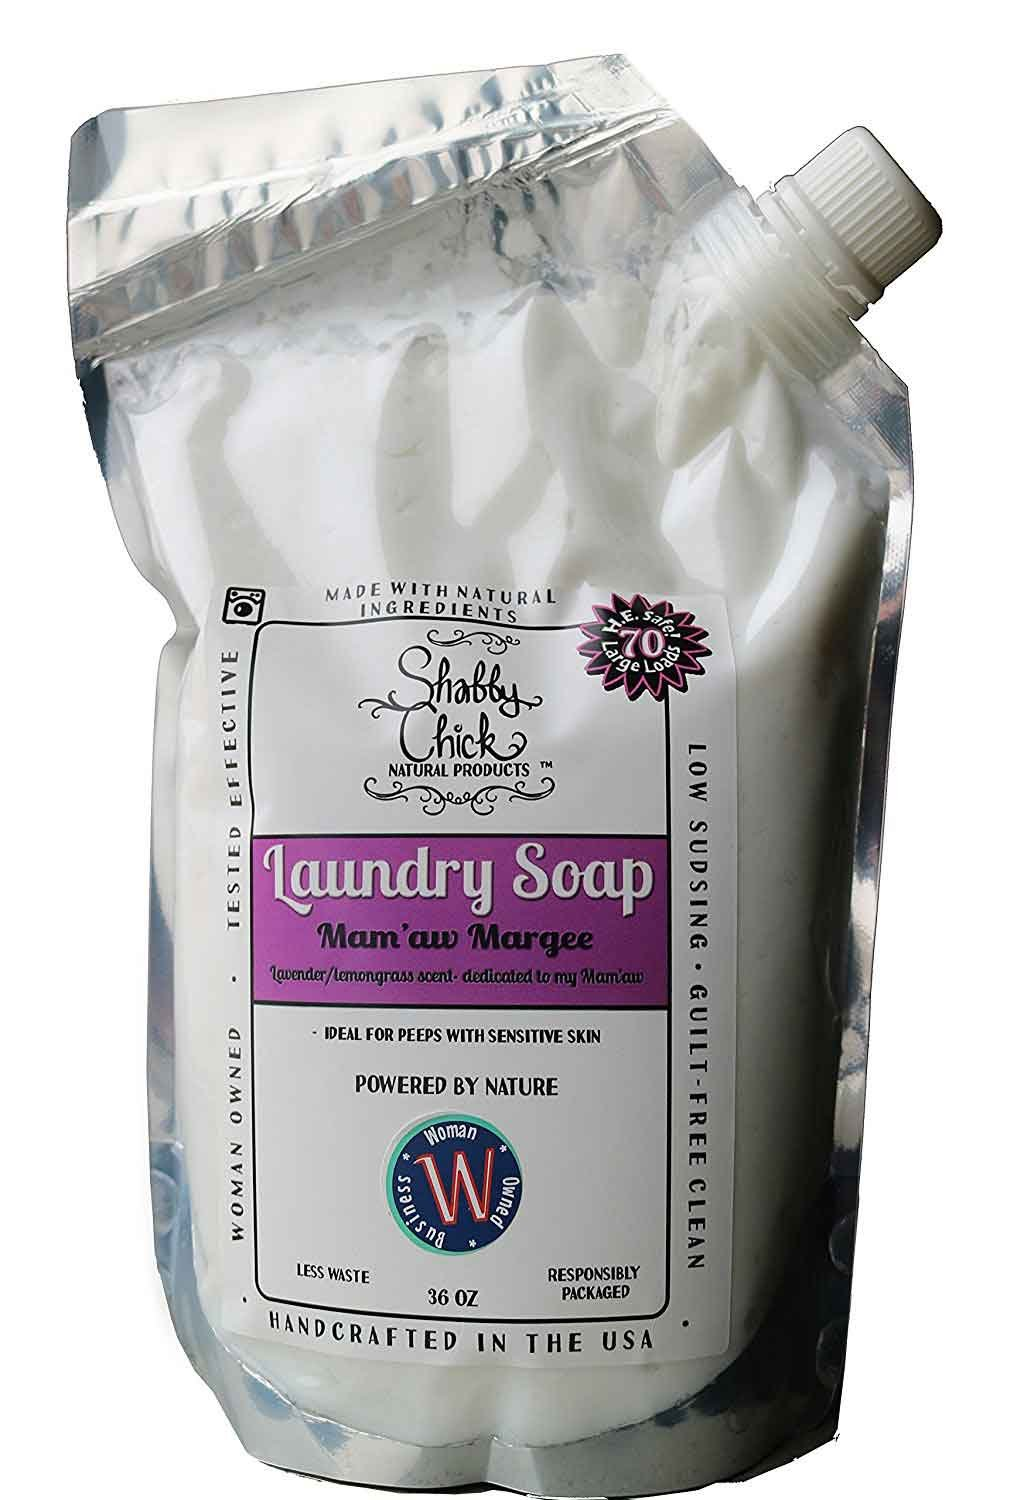 Natural Laundry Detergent - 70 Loads | Hypoallergenic for Sensitive Skin | Kid, Baby, & Pet Safe - Handcrafted in the USA, Lavender Lemongrass by Shabby Chick